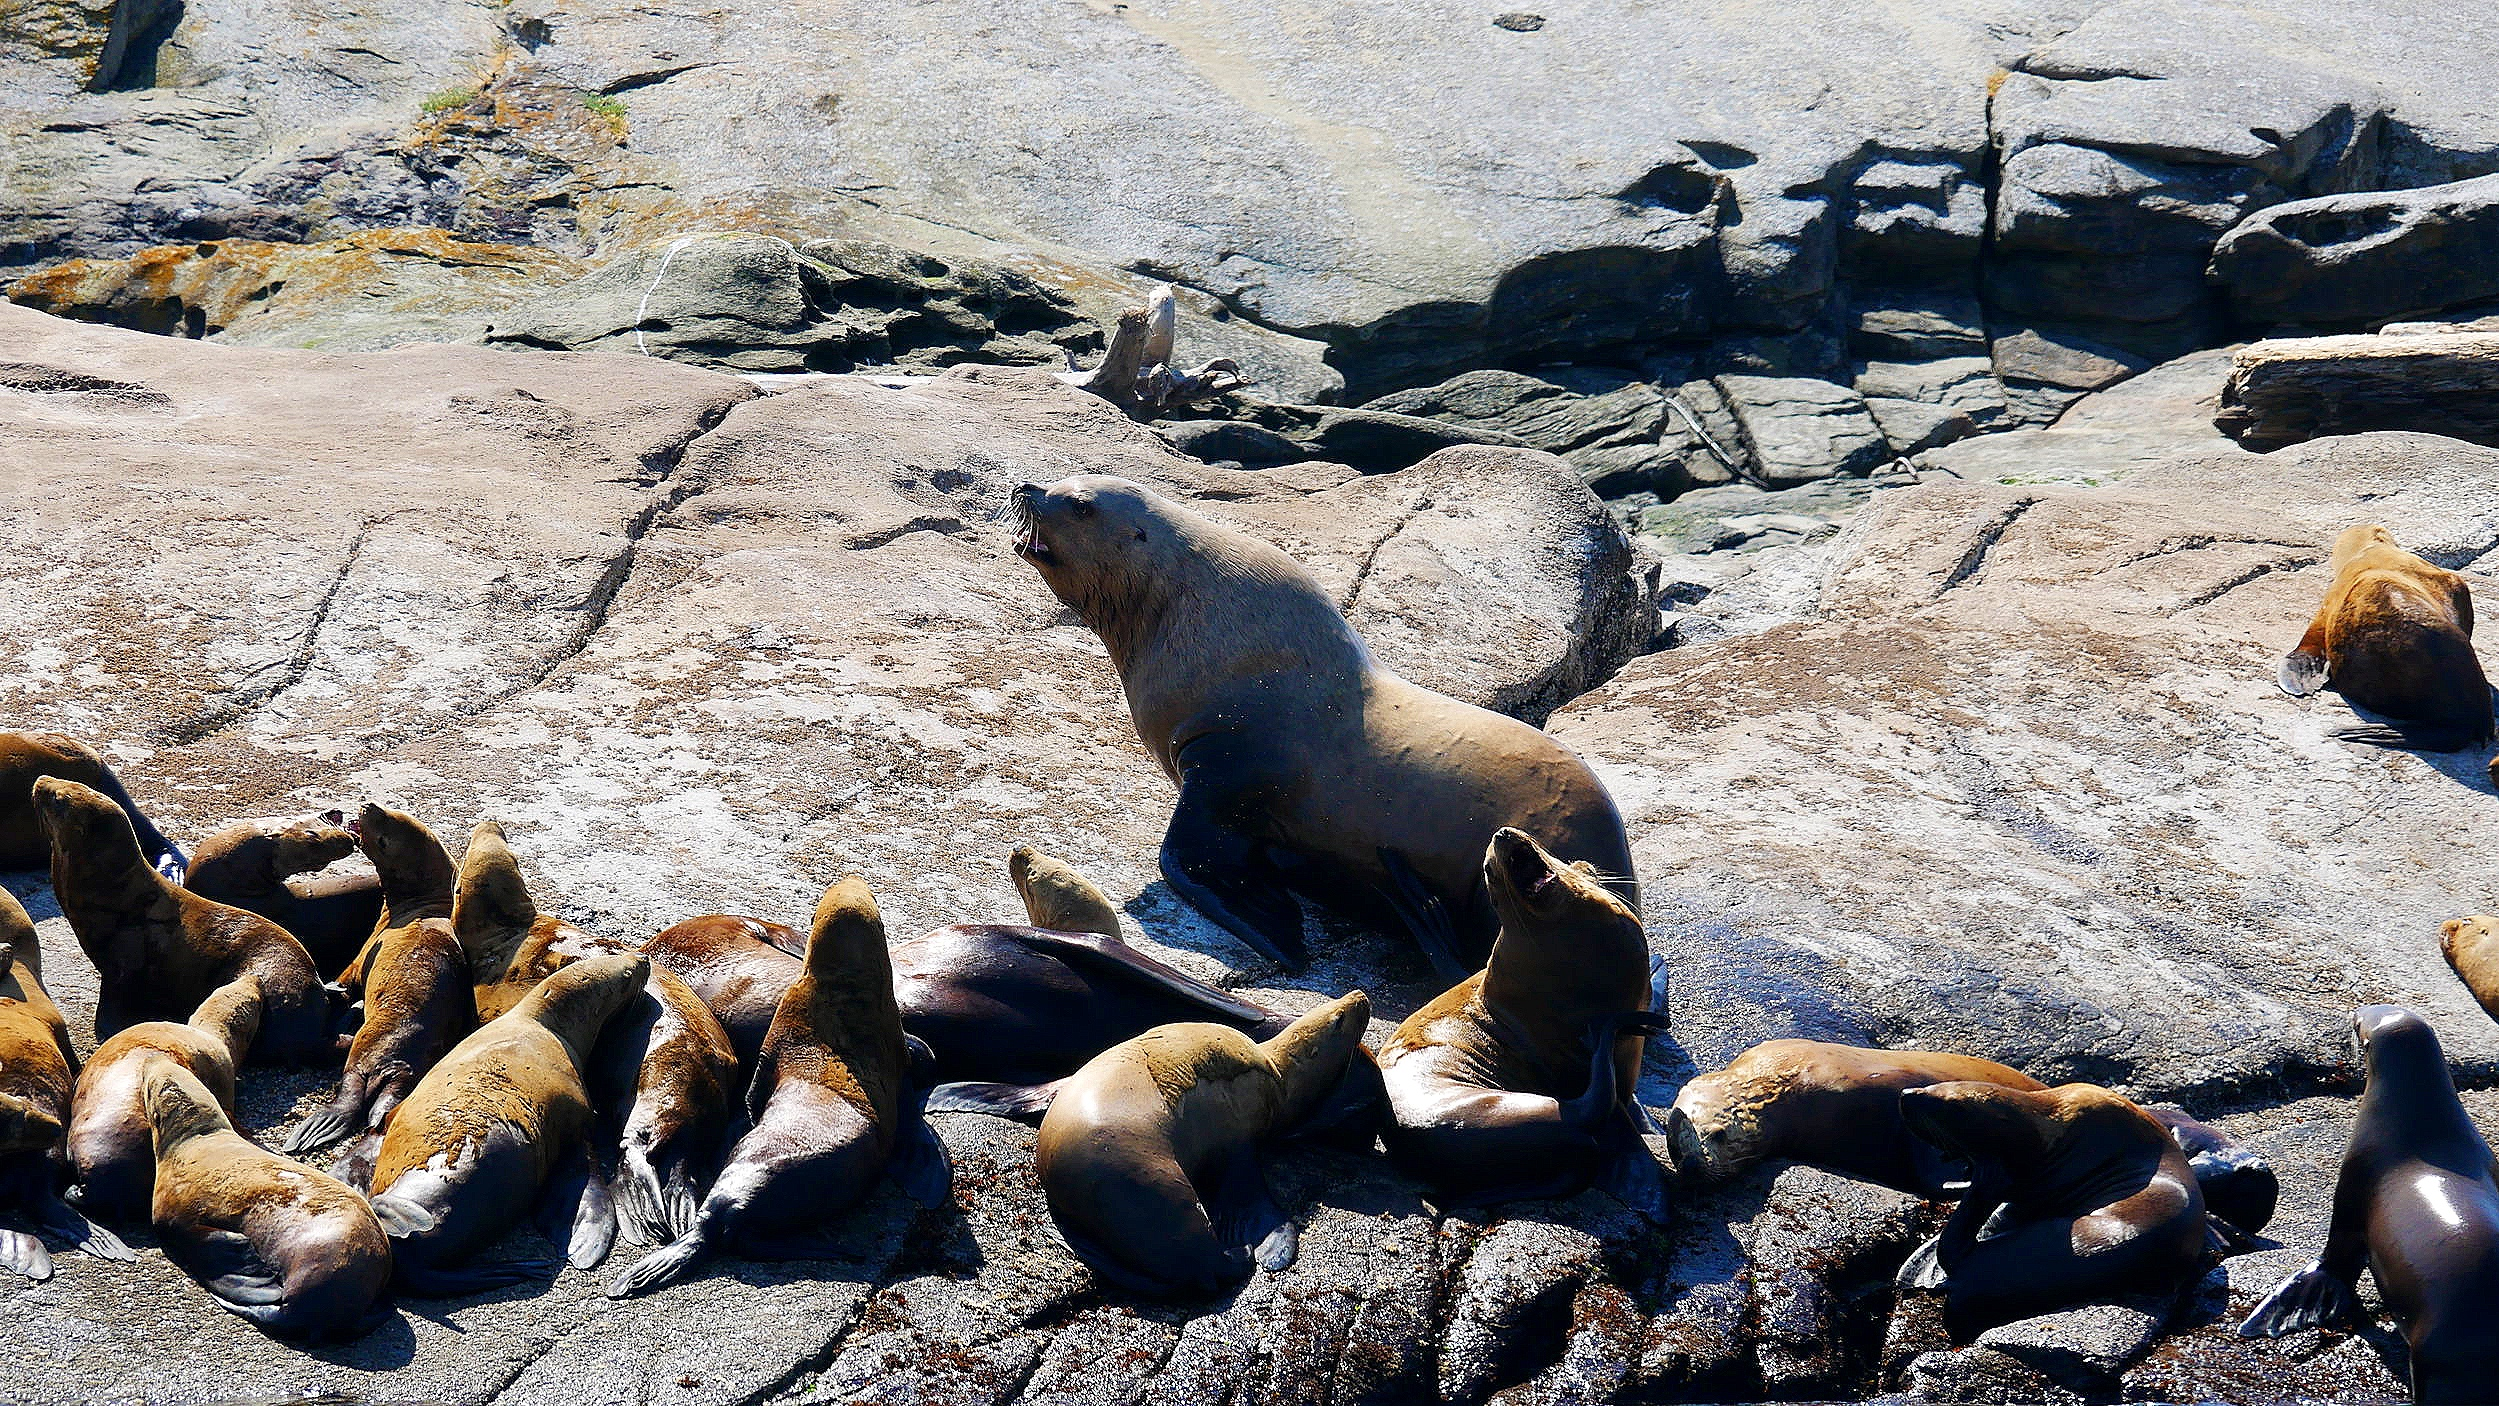 Steller sea lions at Entrance Island. Check out the difference in size of a big male to juveniles and females. Photo: Rodrigo Menezes